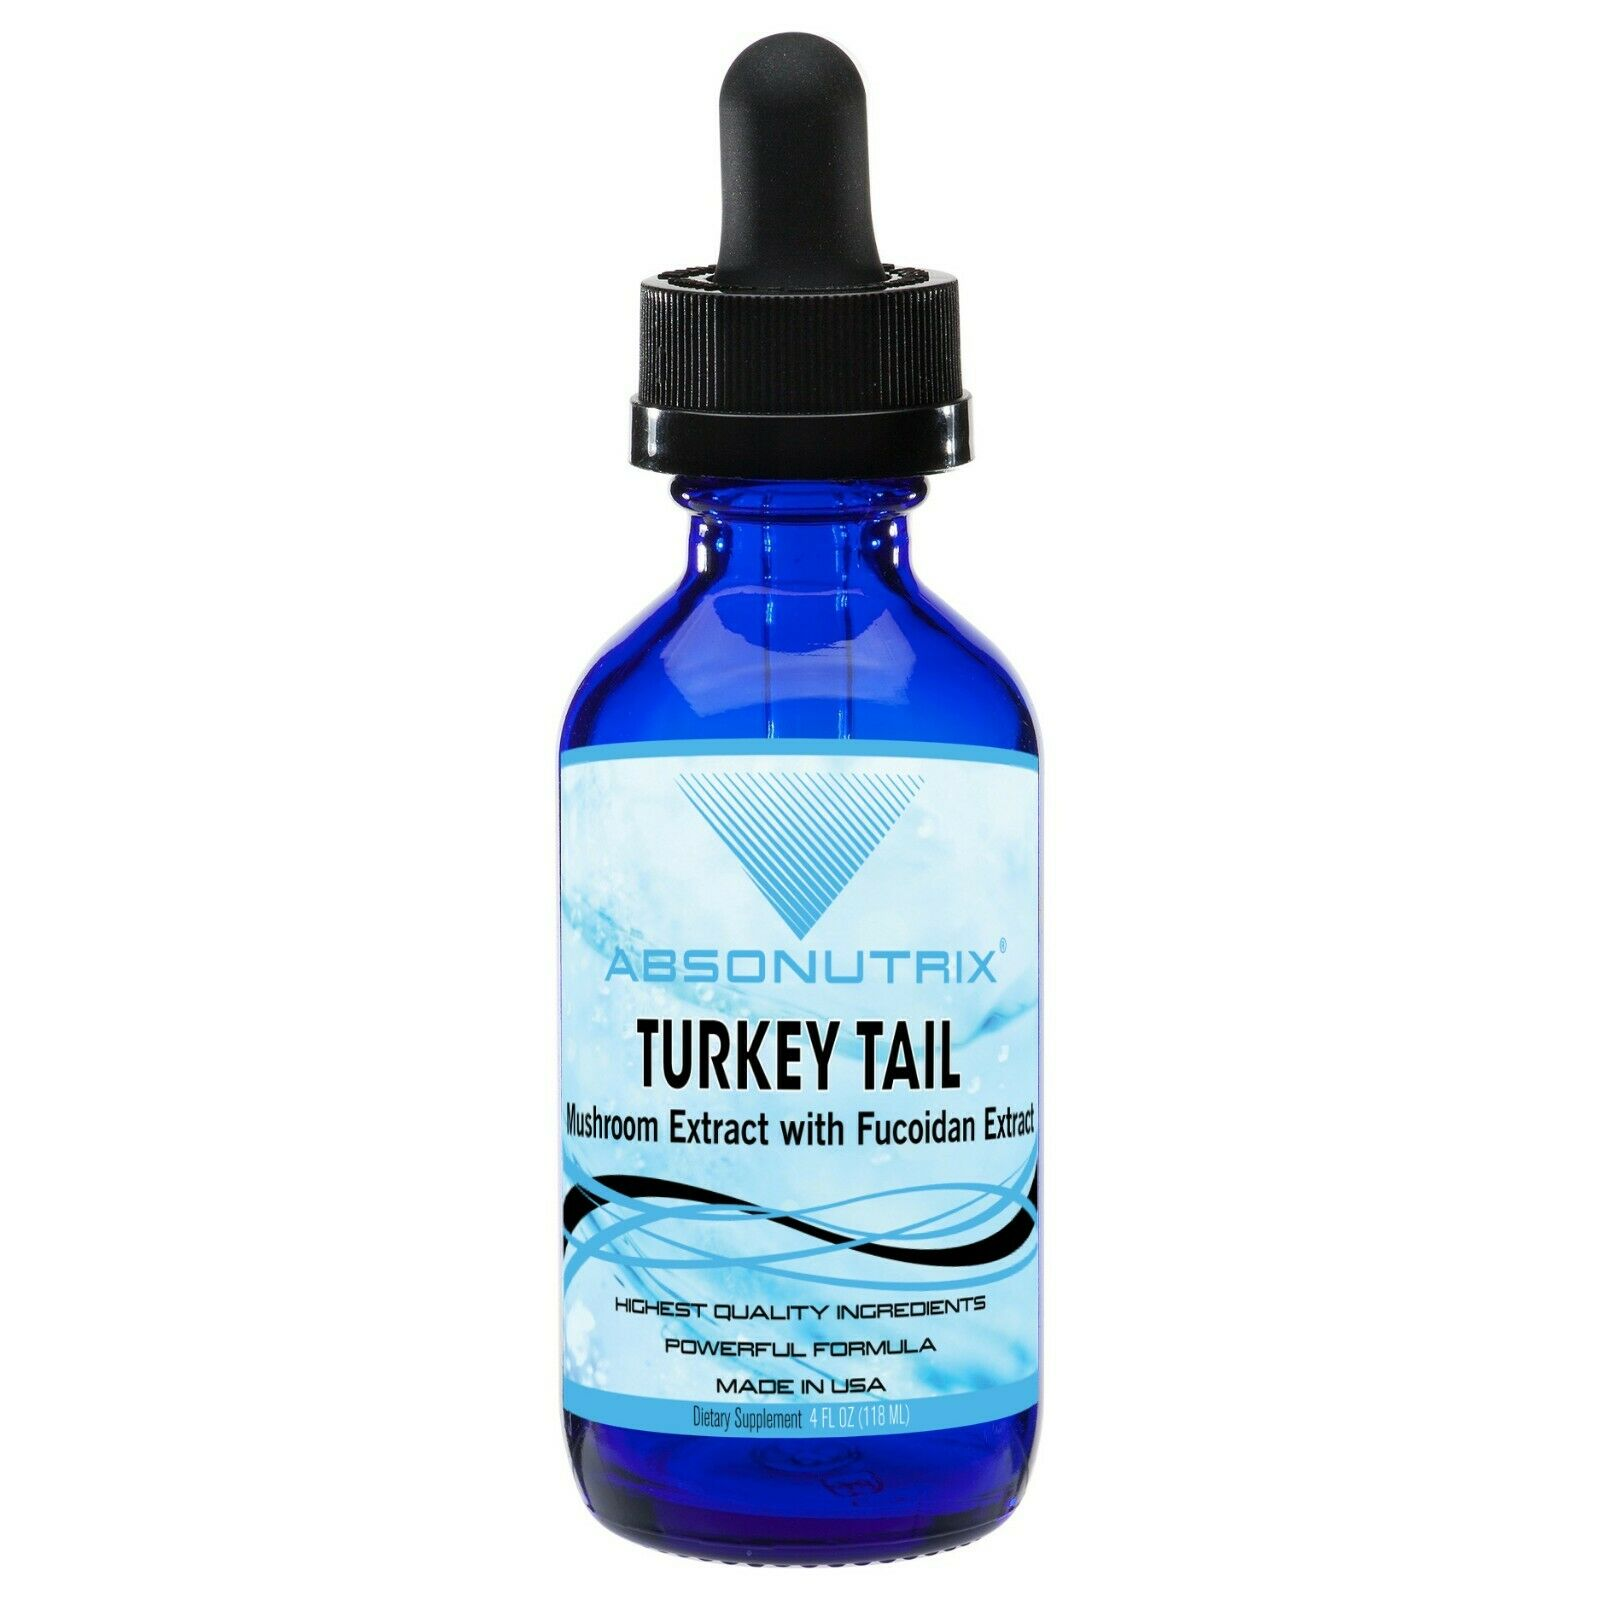 Absonutrix Turkey Tail Mushroom with Fucoidan Extract antioxidant Immune booster